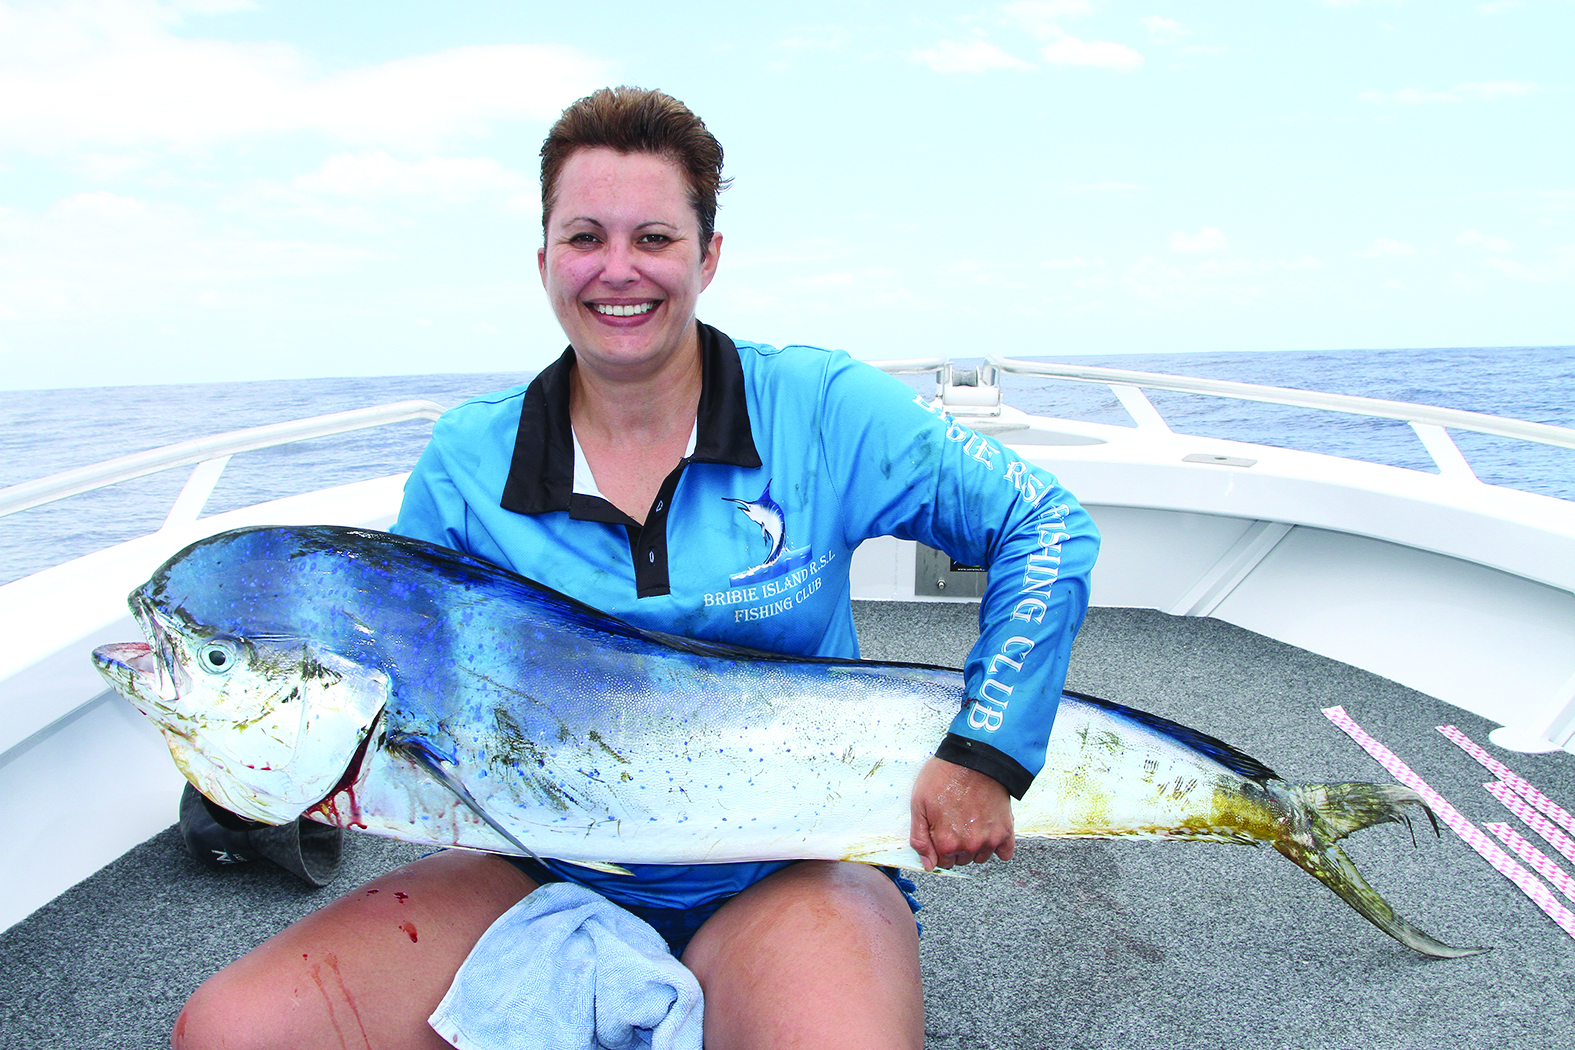 One of the many dolphin fish caught by Tammy Oostenbroek.